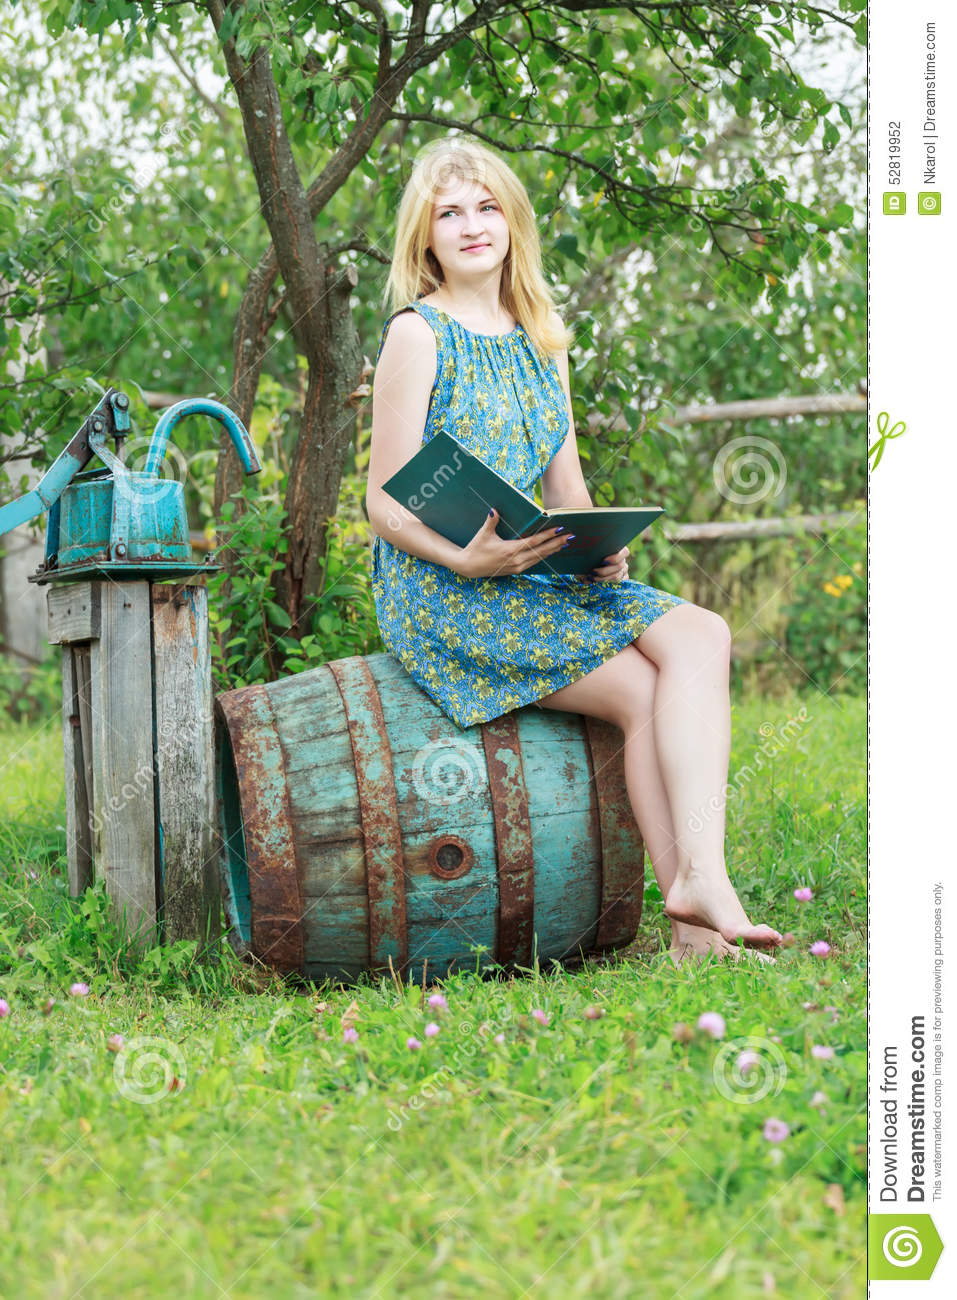 https://thumbs.dreamstime.com/z/portrait-barefoot-student-girl-garden-opened-book-summer-52819952.jpg